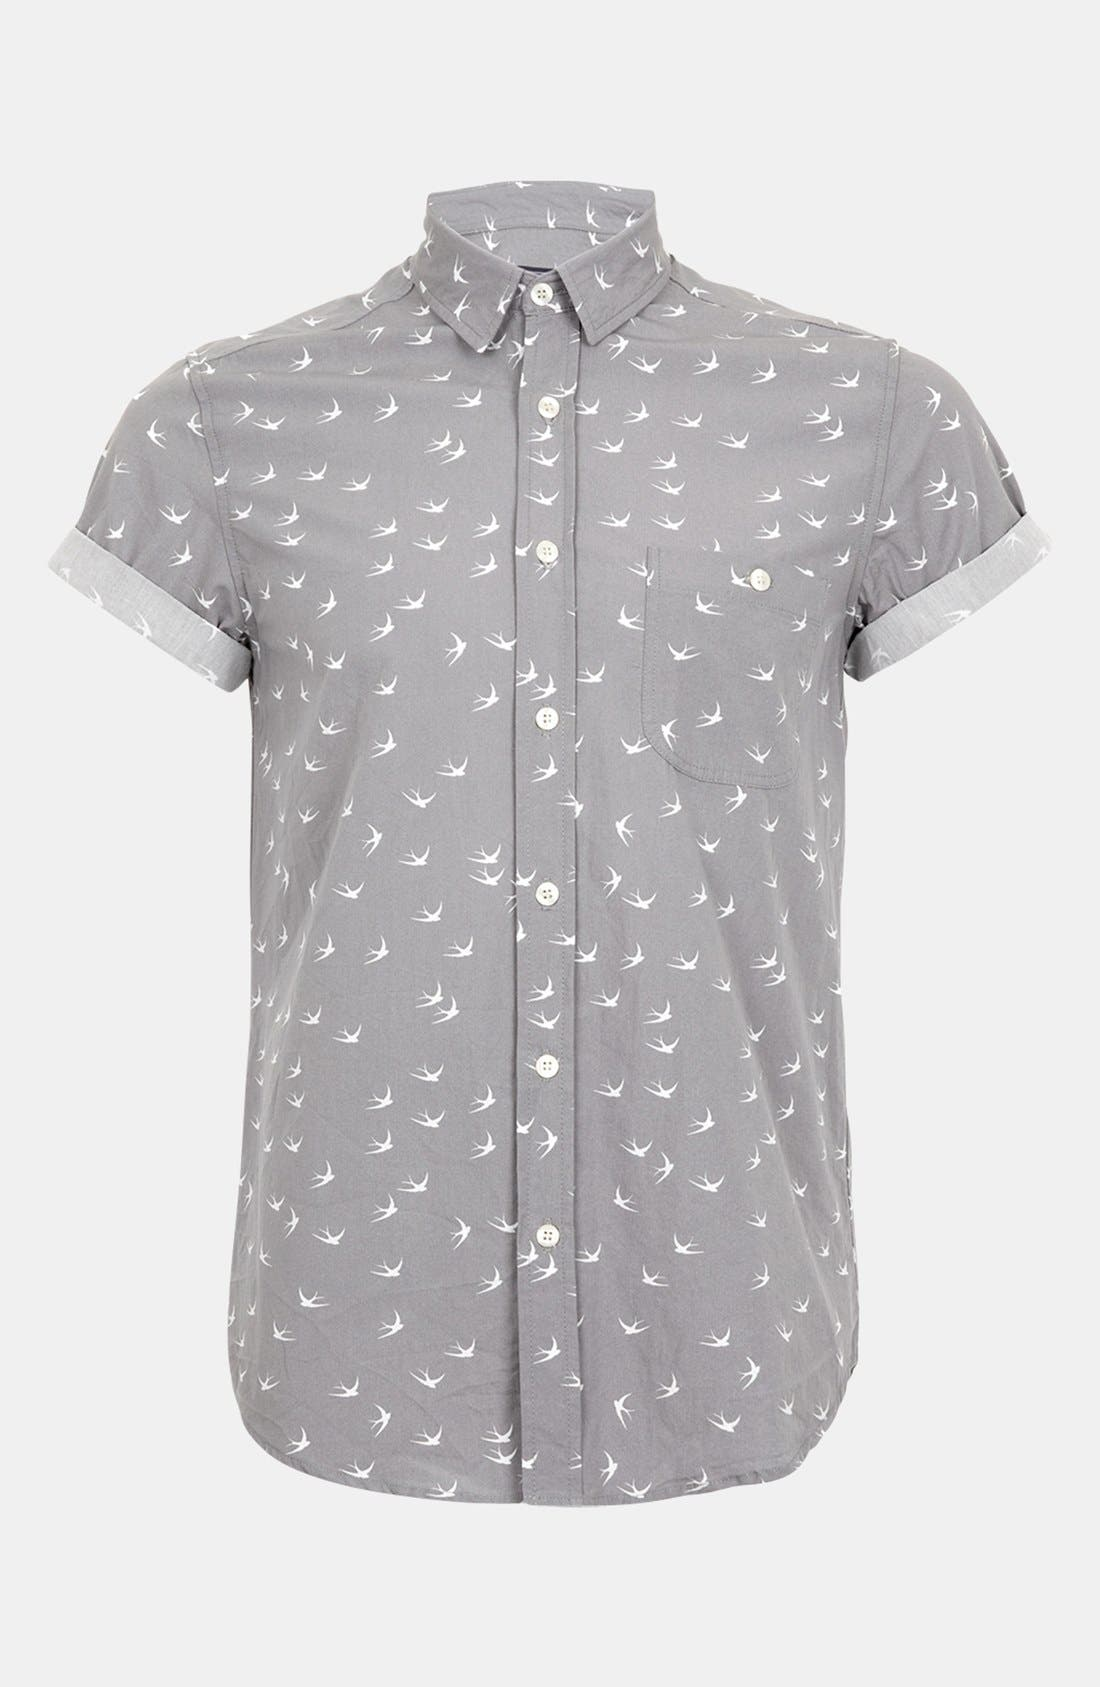 Main Image - Topman 'High Roller' Swallow Print Shirt